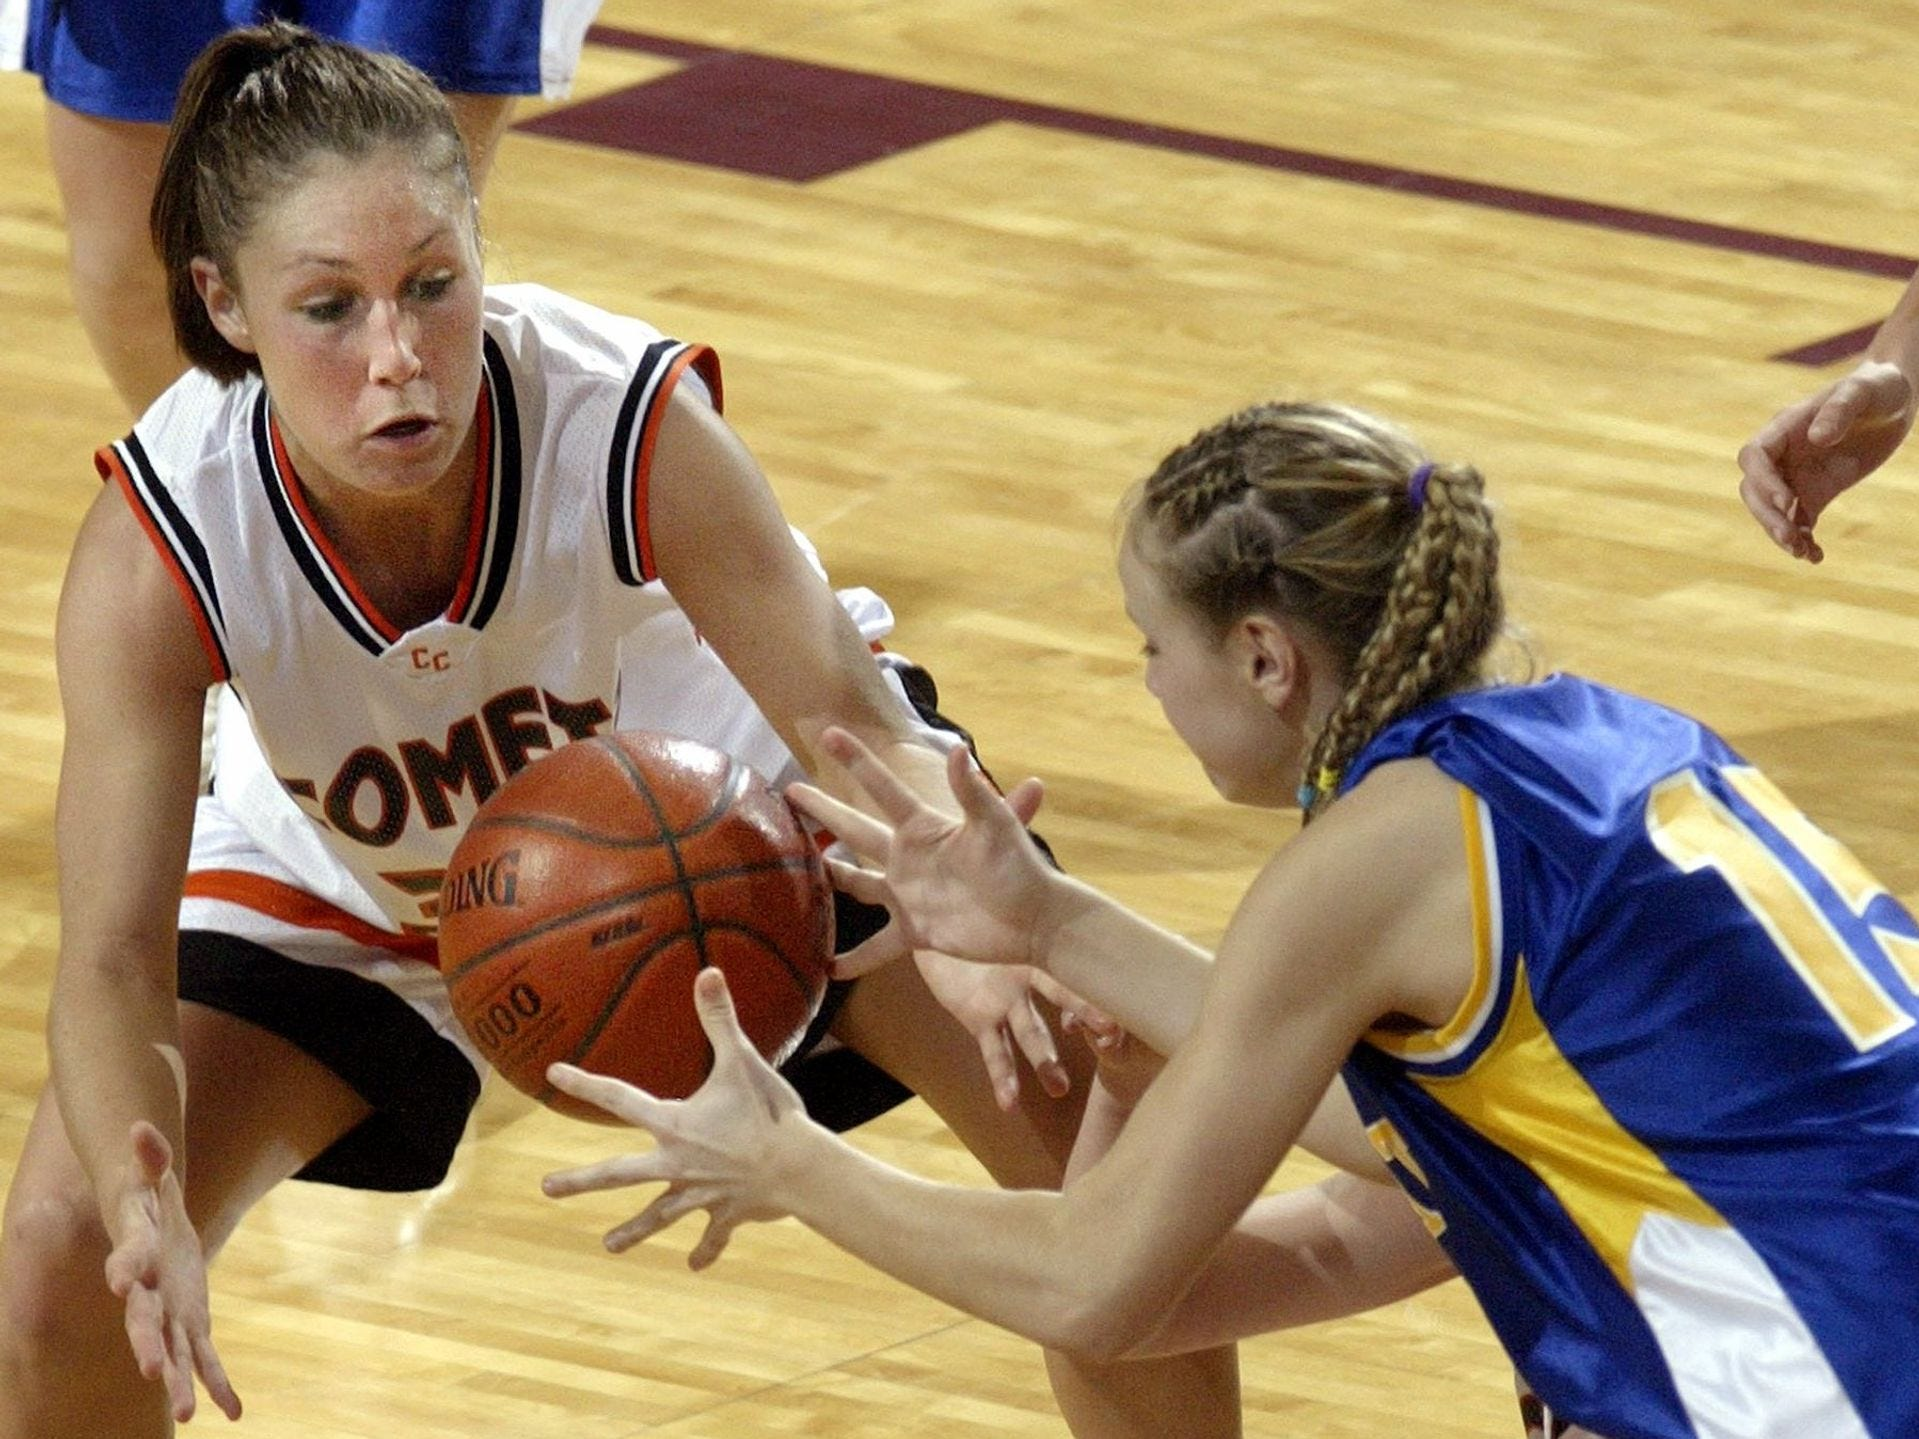 2004: Charles City's Marlowe Brooks and Dubuque Wahlert's Angie White try to get control of a loose ball at the state girls' basketball tournament. Register file photo